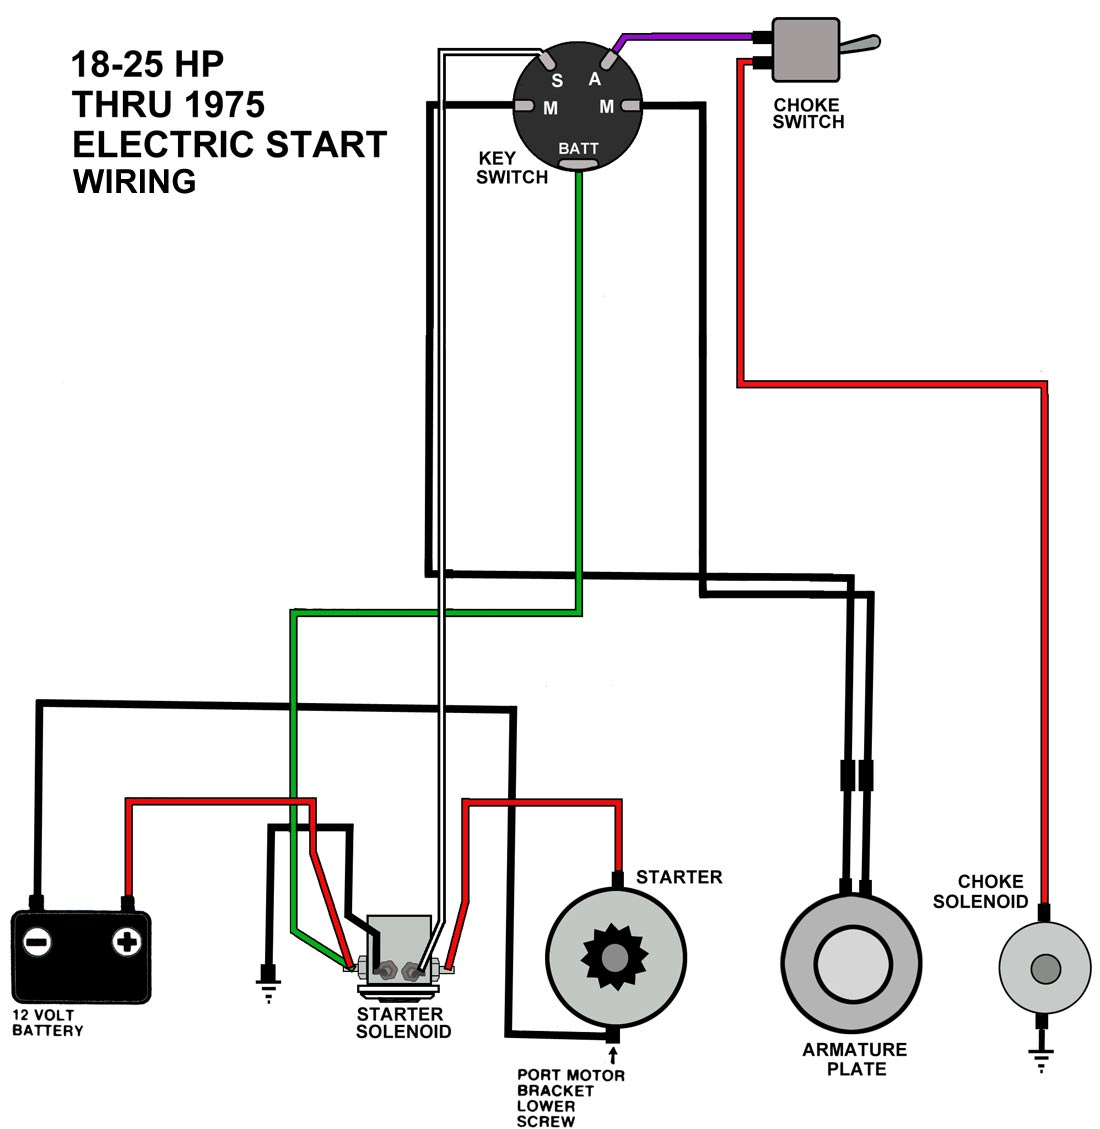 hight resolution of sel starter solenoid wiring diagram wiring diagram third level rh 12 19 13 jacobwinterstein com polaris ranger starter solenoid wiring diagram polaris